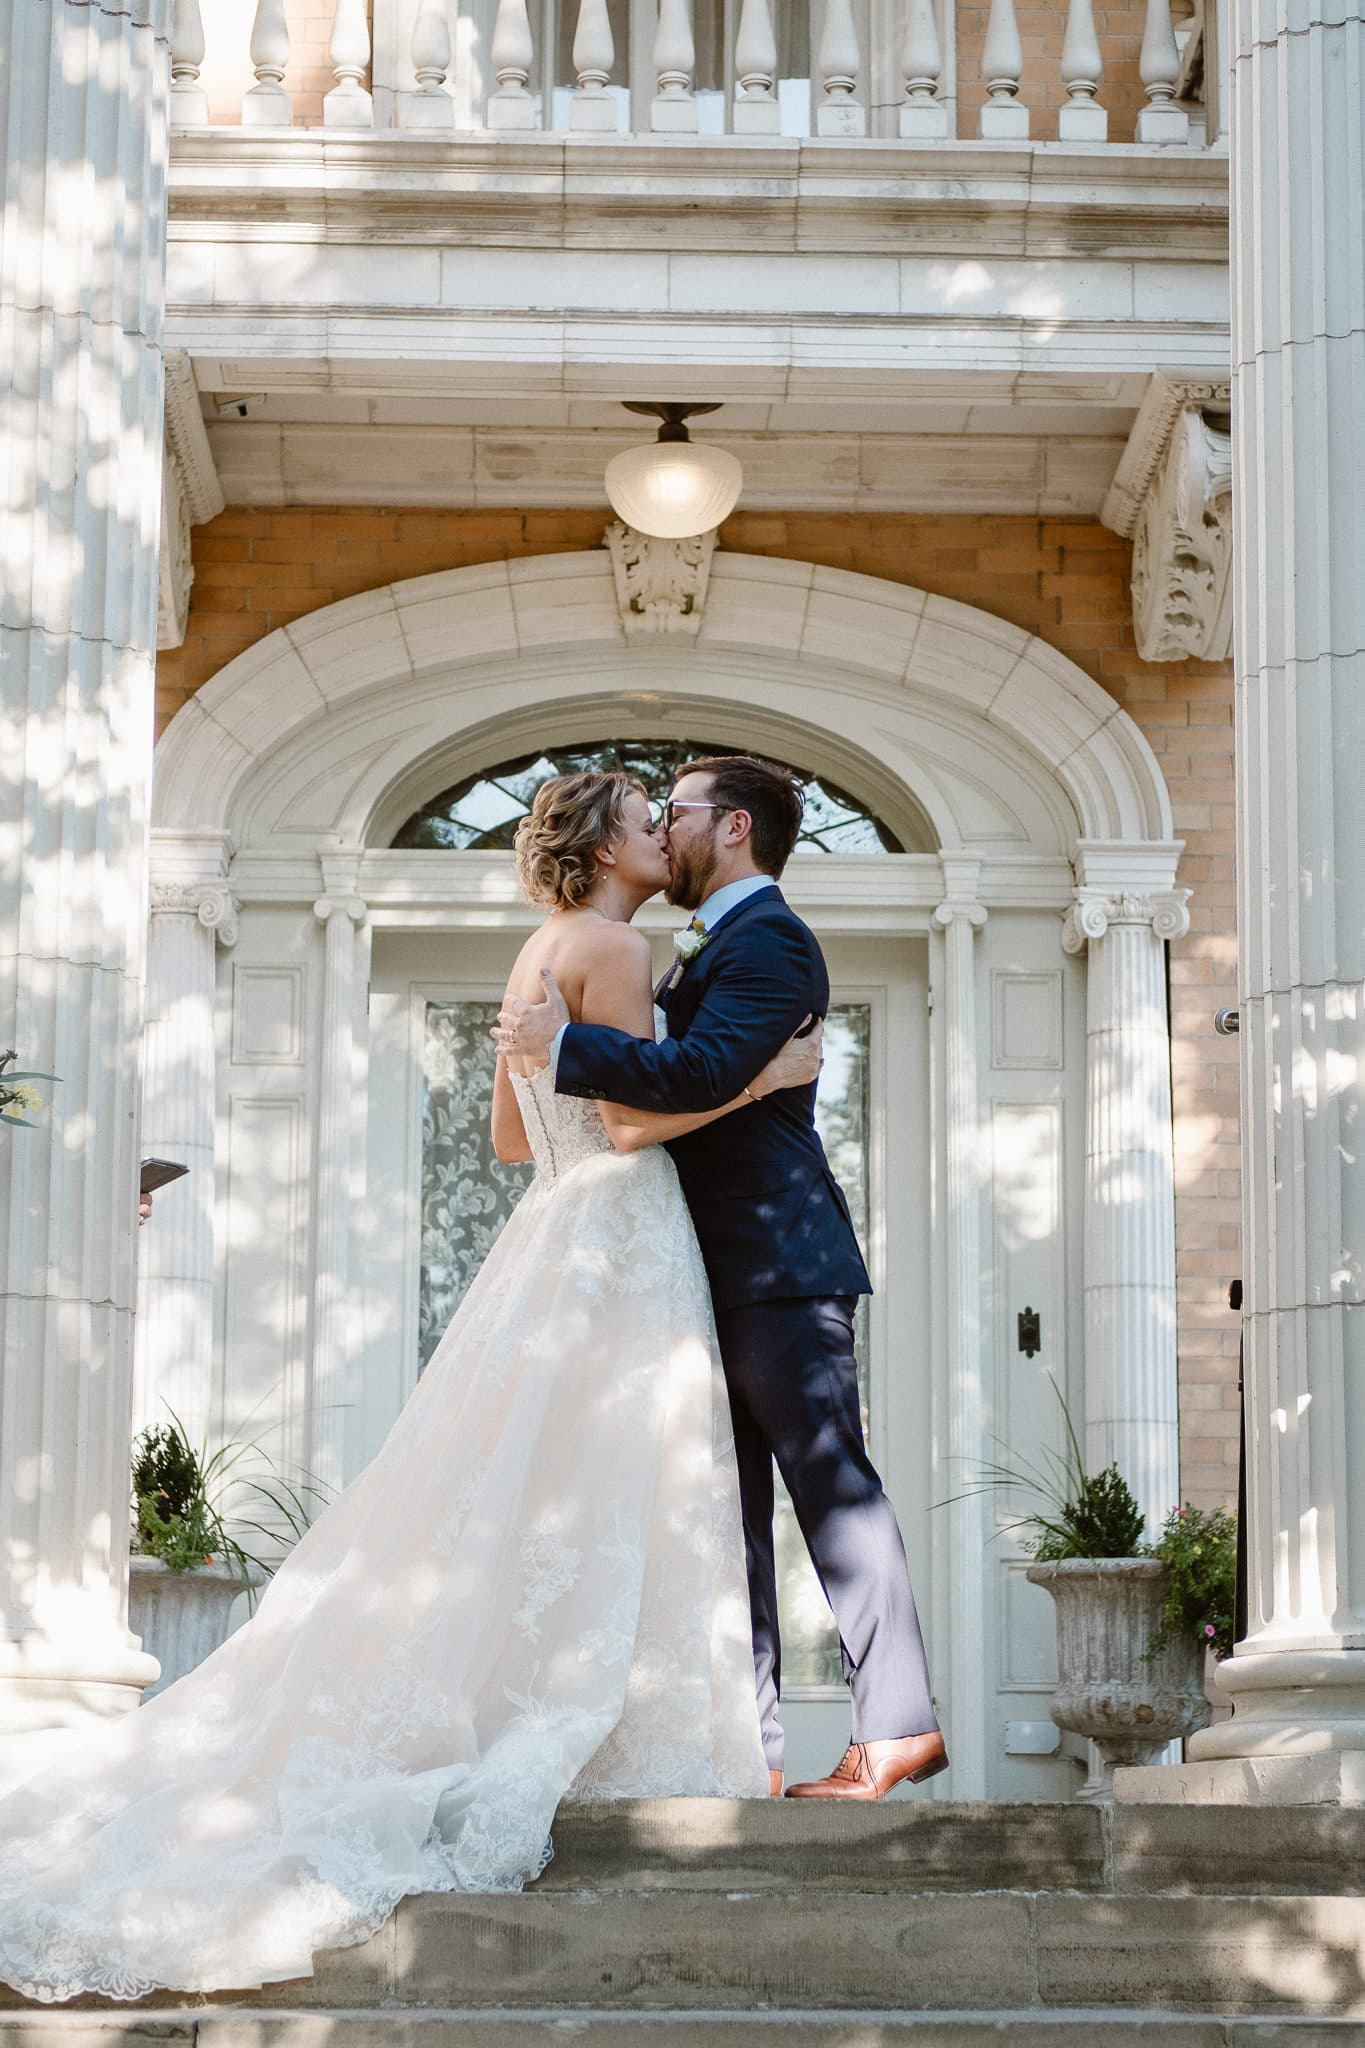 Grant Humphreys Mansion Wedding Photographer, Denver wedding photographer, Colorado wedding photographer, wedding ceremony